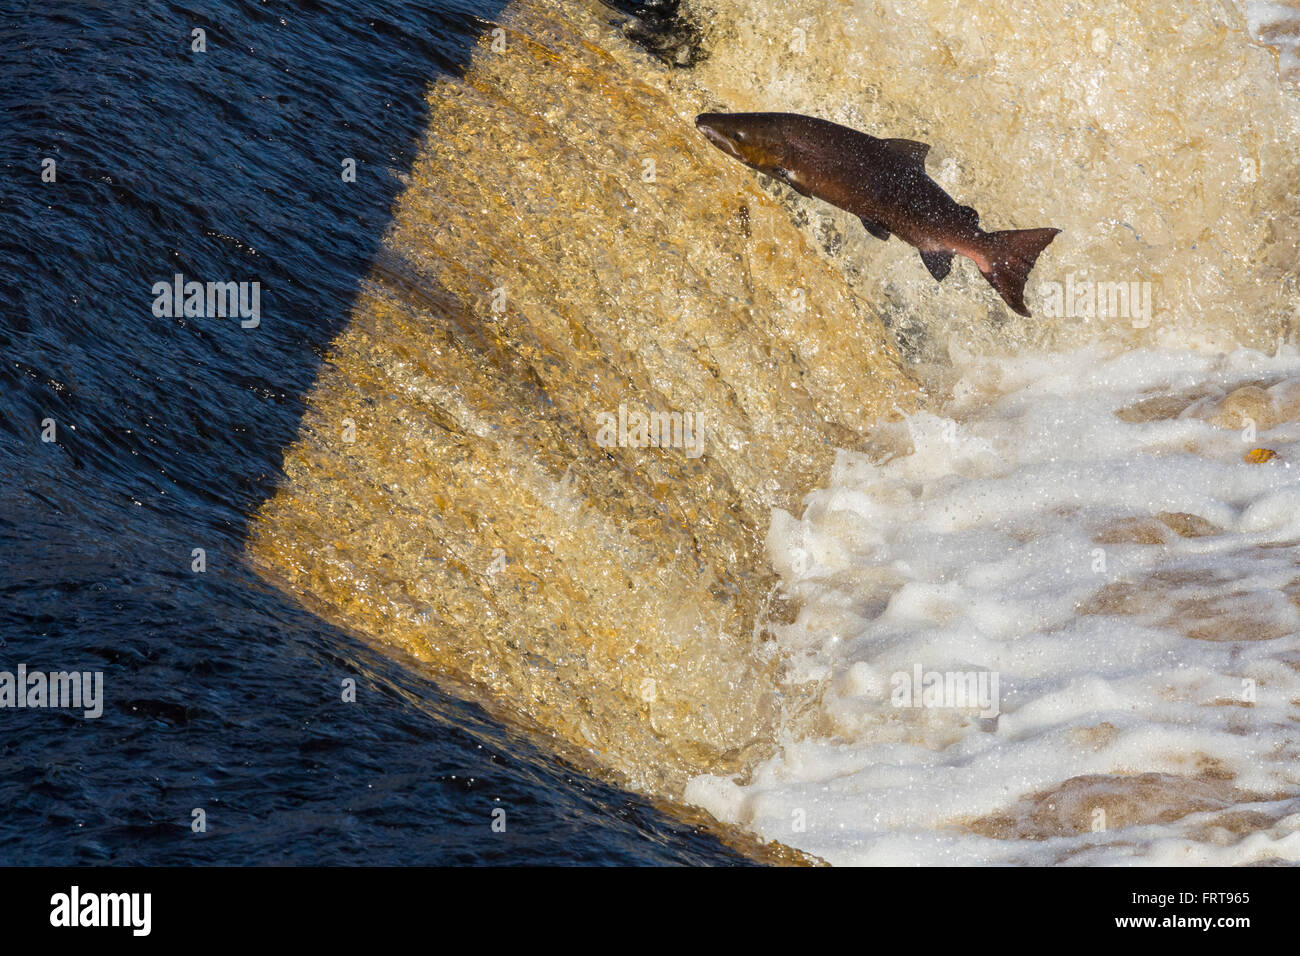 Atlantic salmon (Salmo salar) leaping weir on upstream migration, River Tyne, Hexham, Northumberland, UK - Stock Image